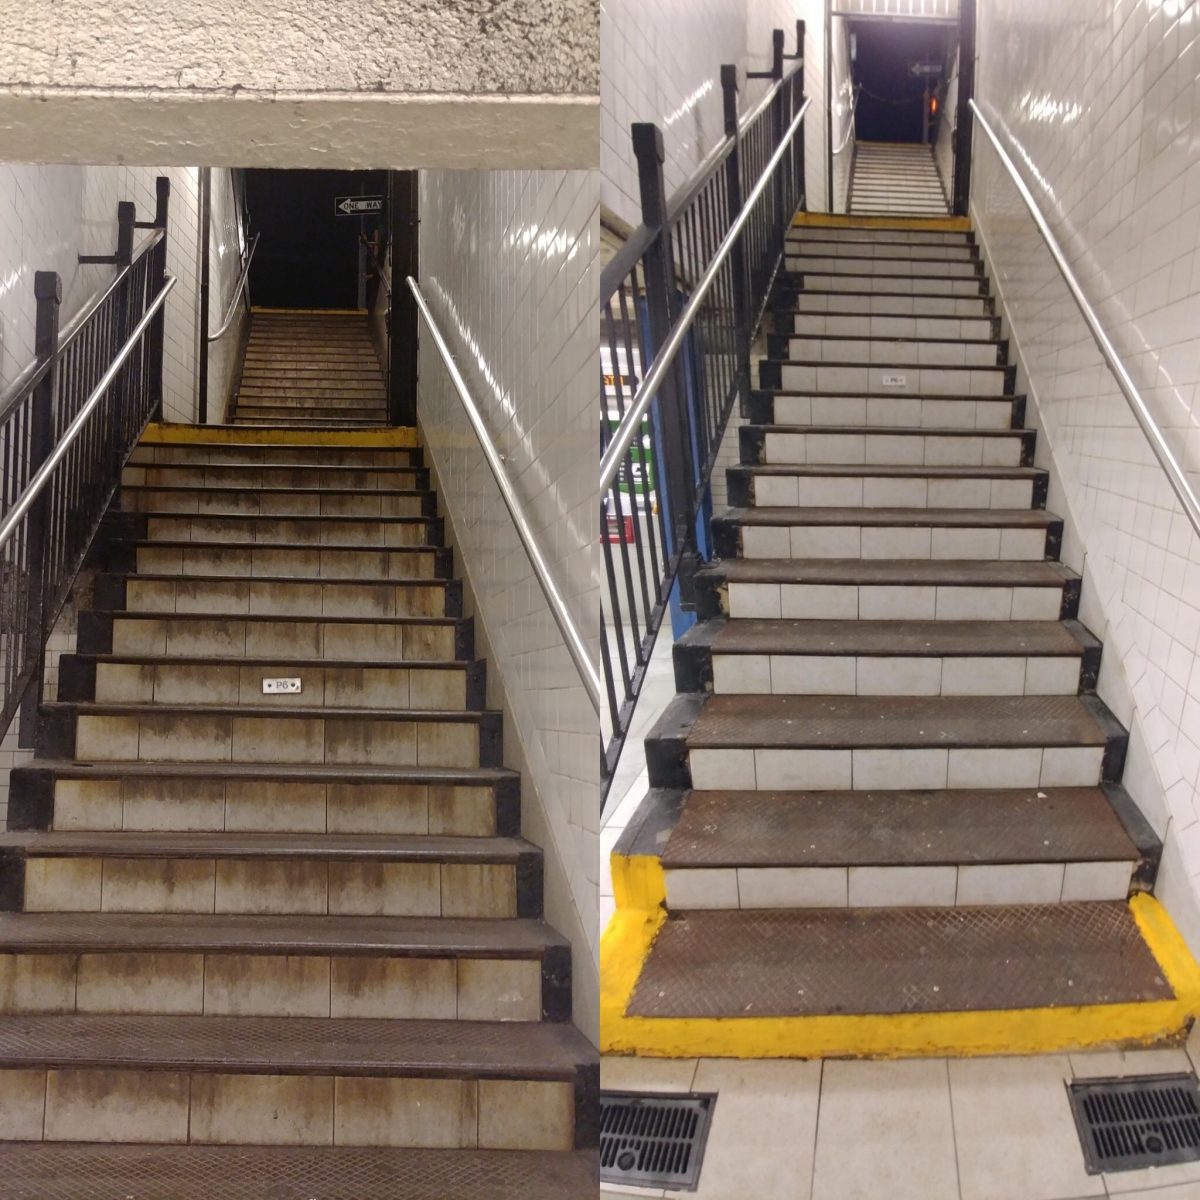 subway stairwell